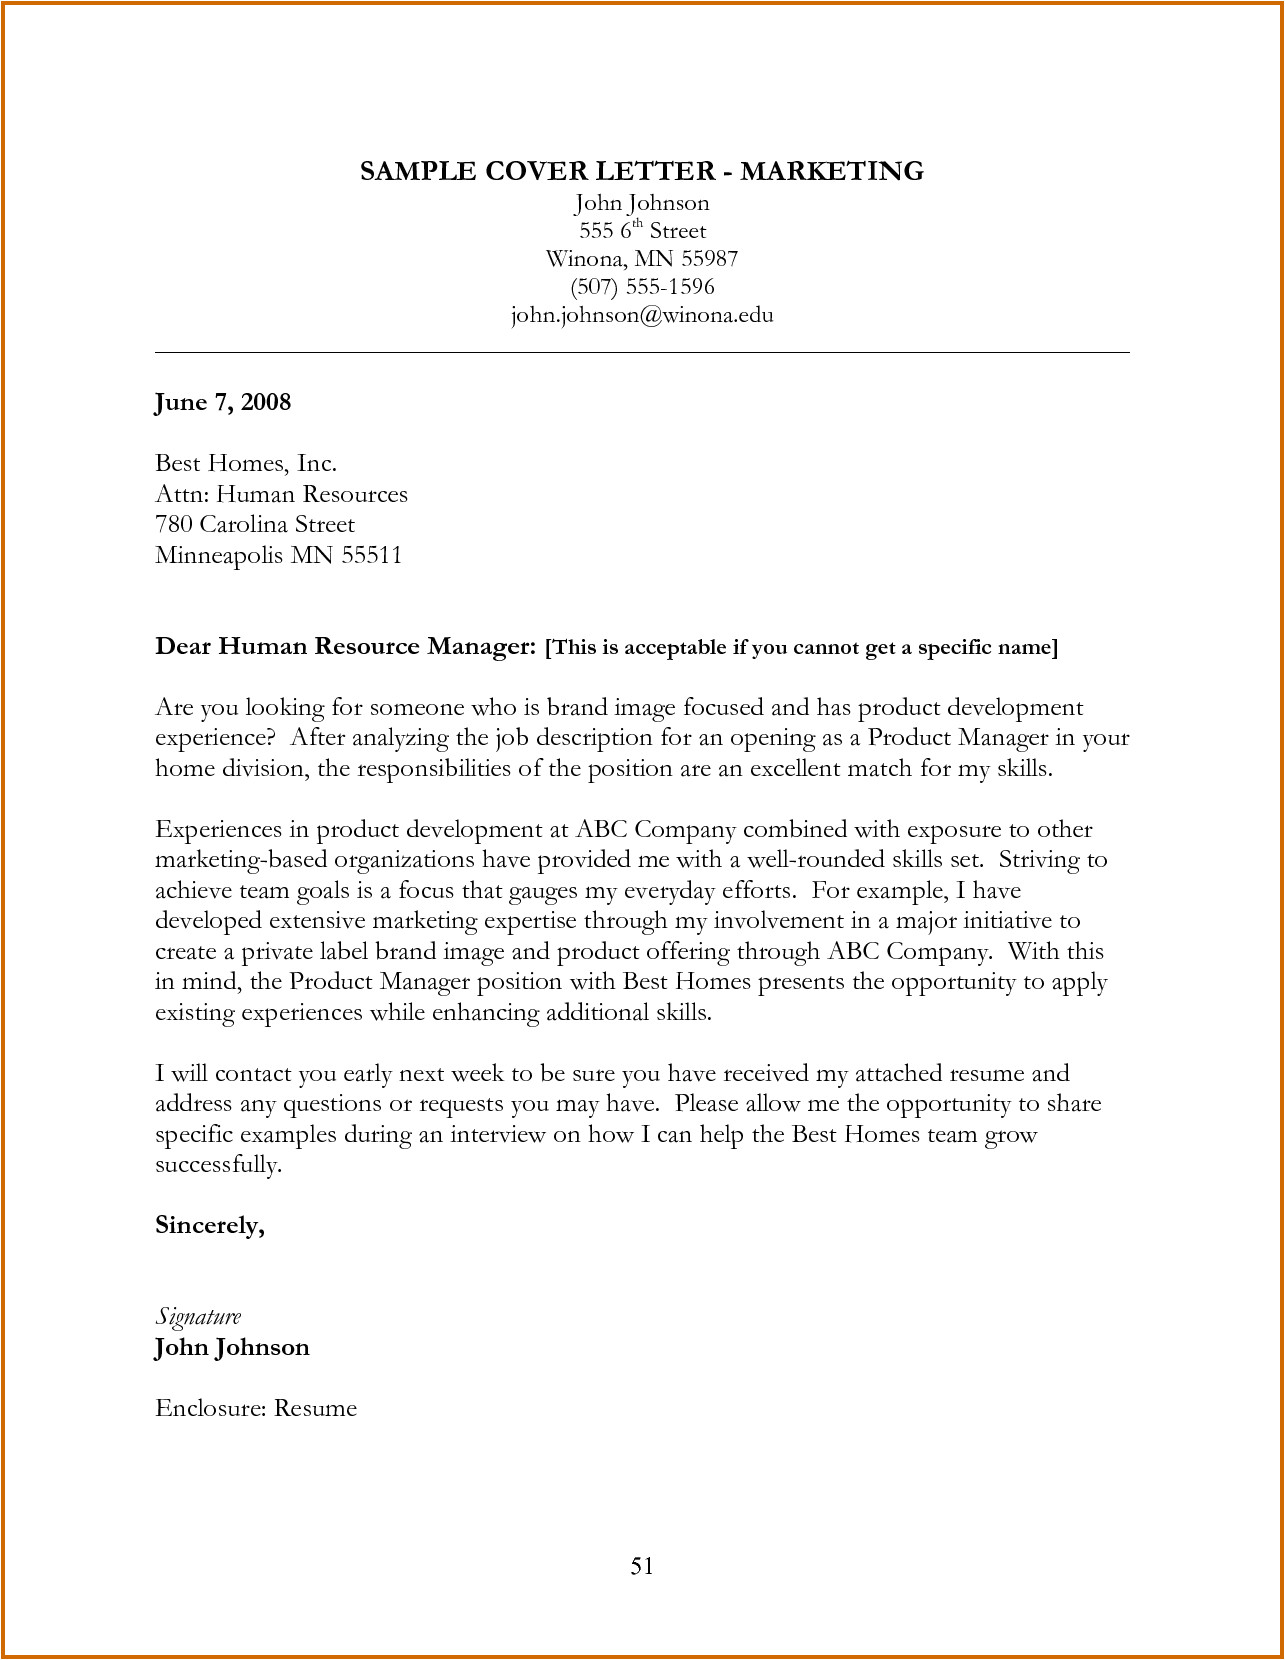 10 how to write a marketing cover letter